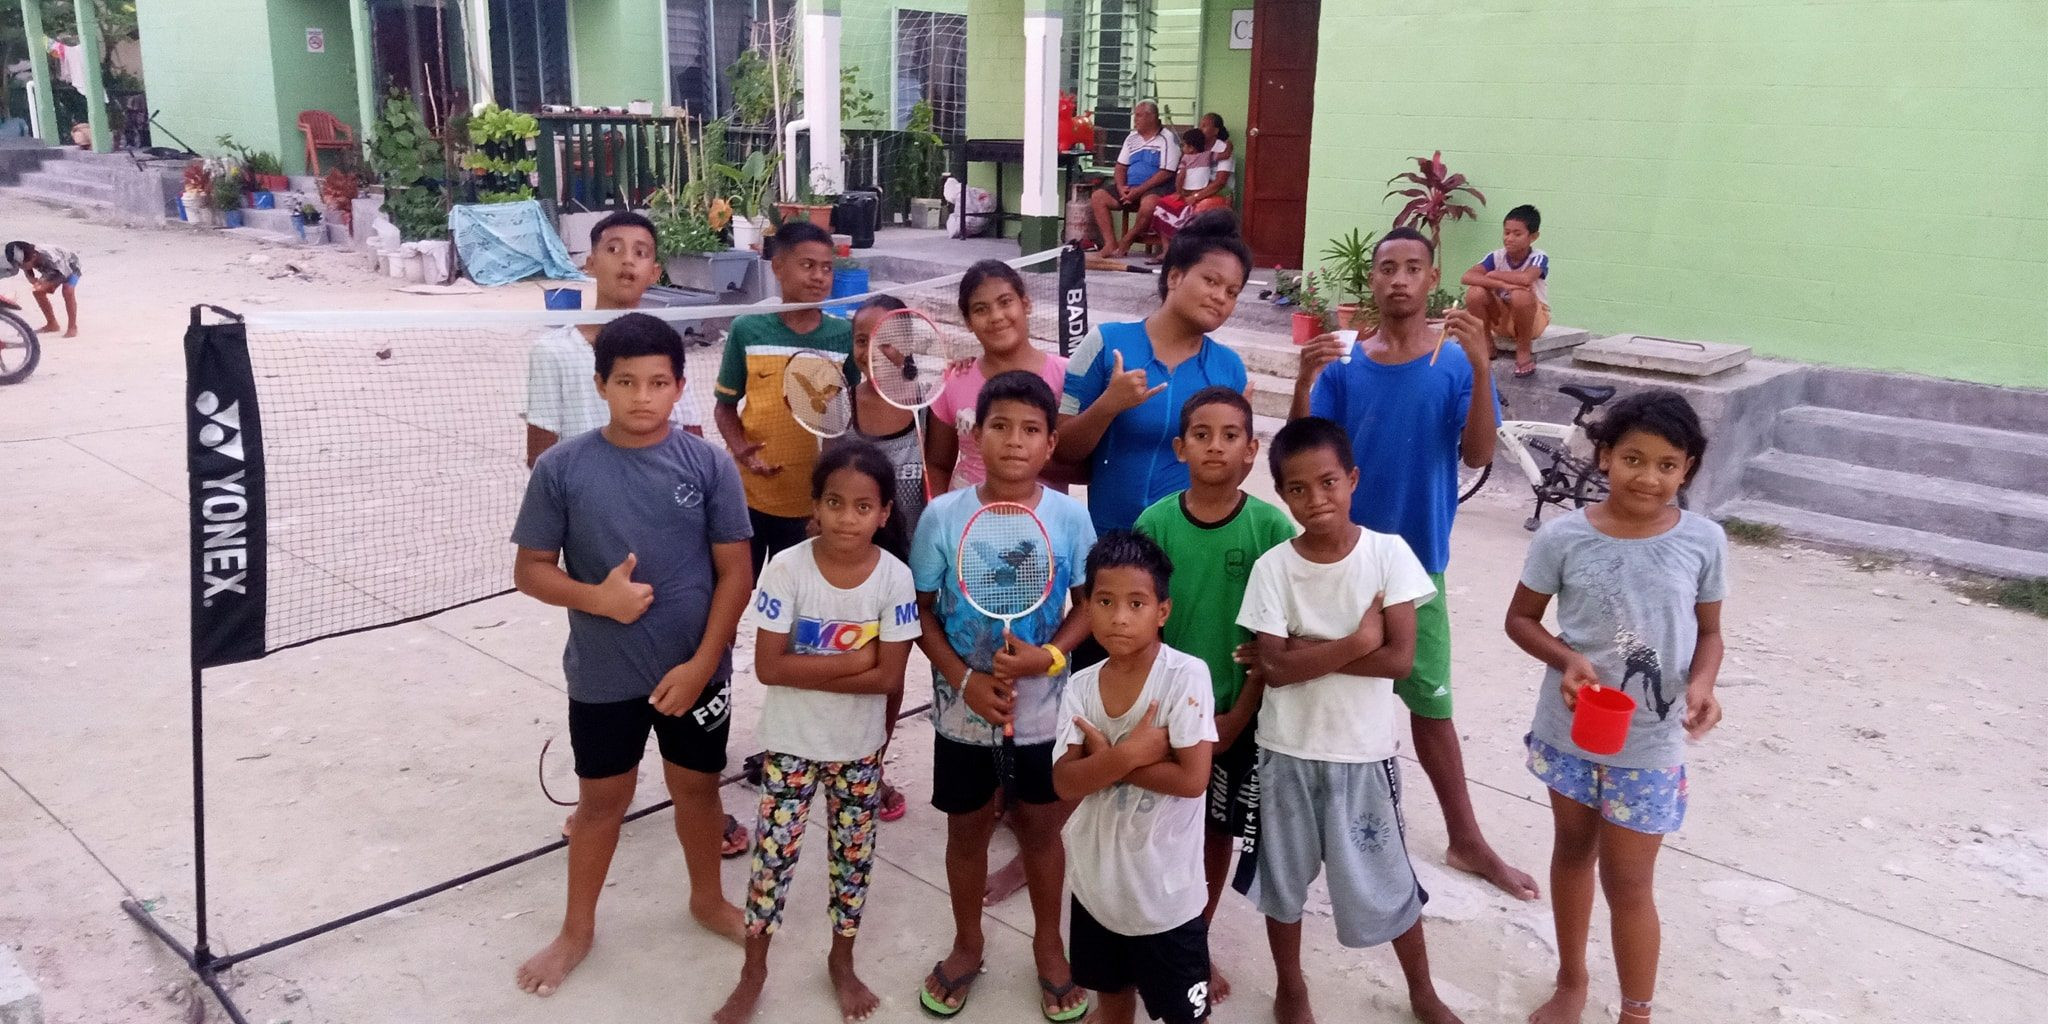 Tuvalu badminton street programme sees development in nation